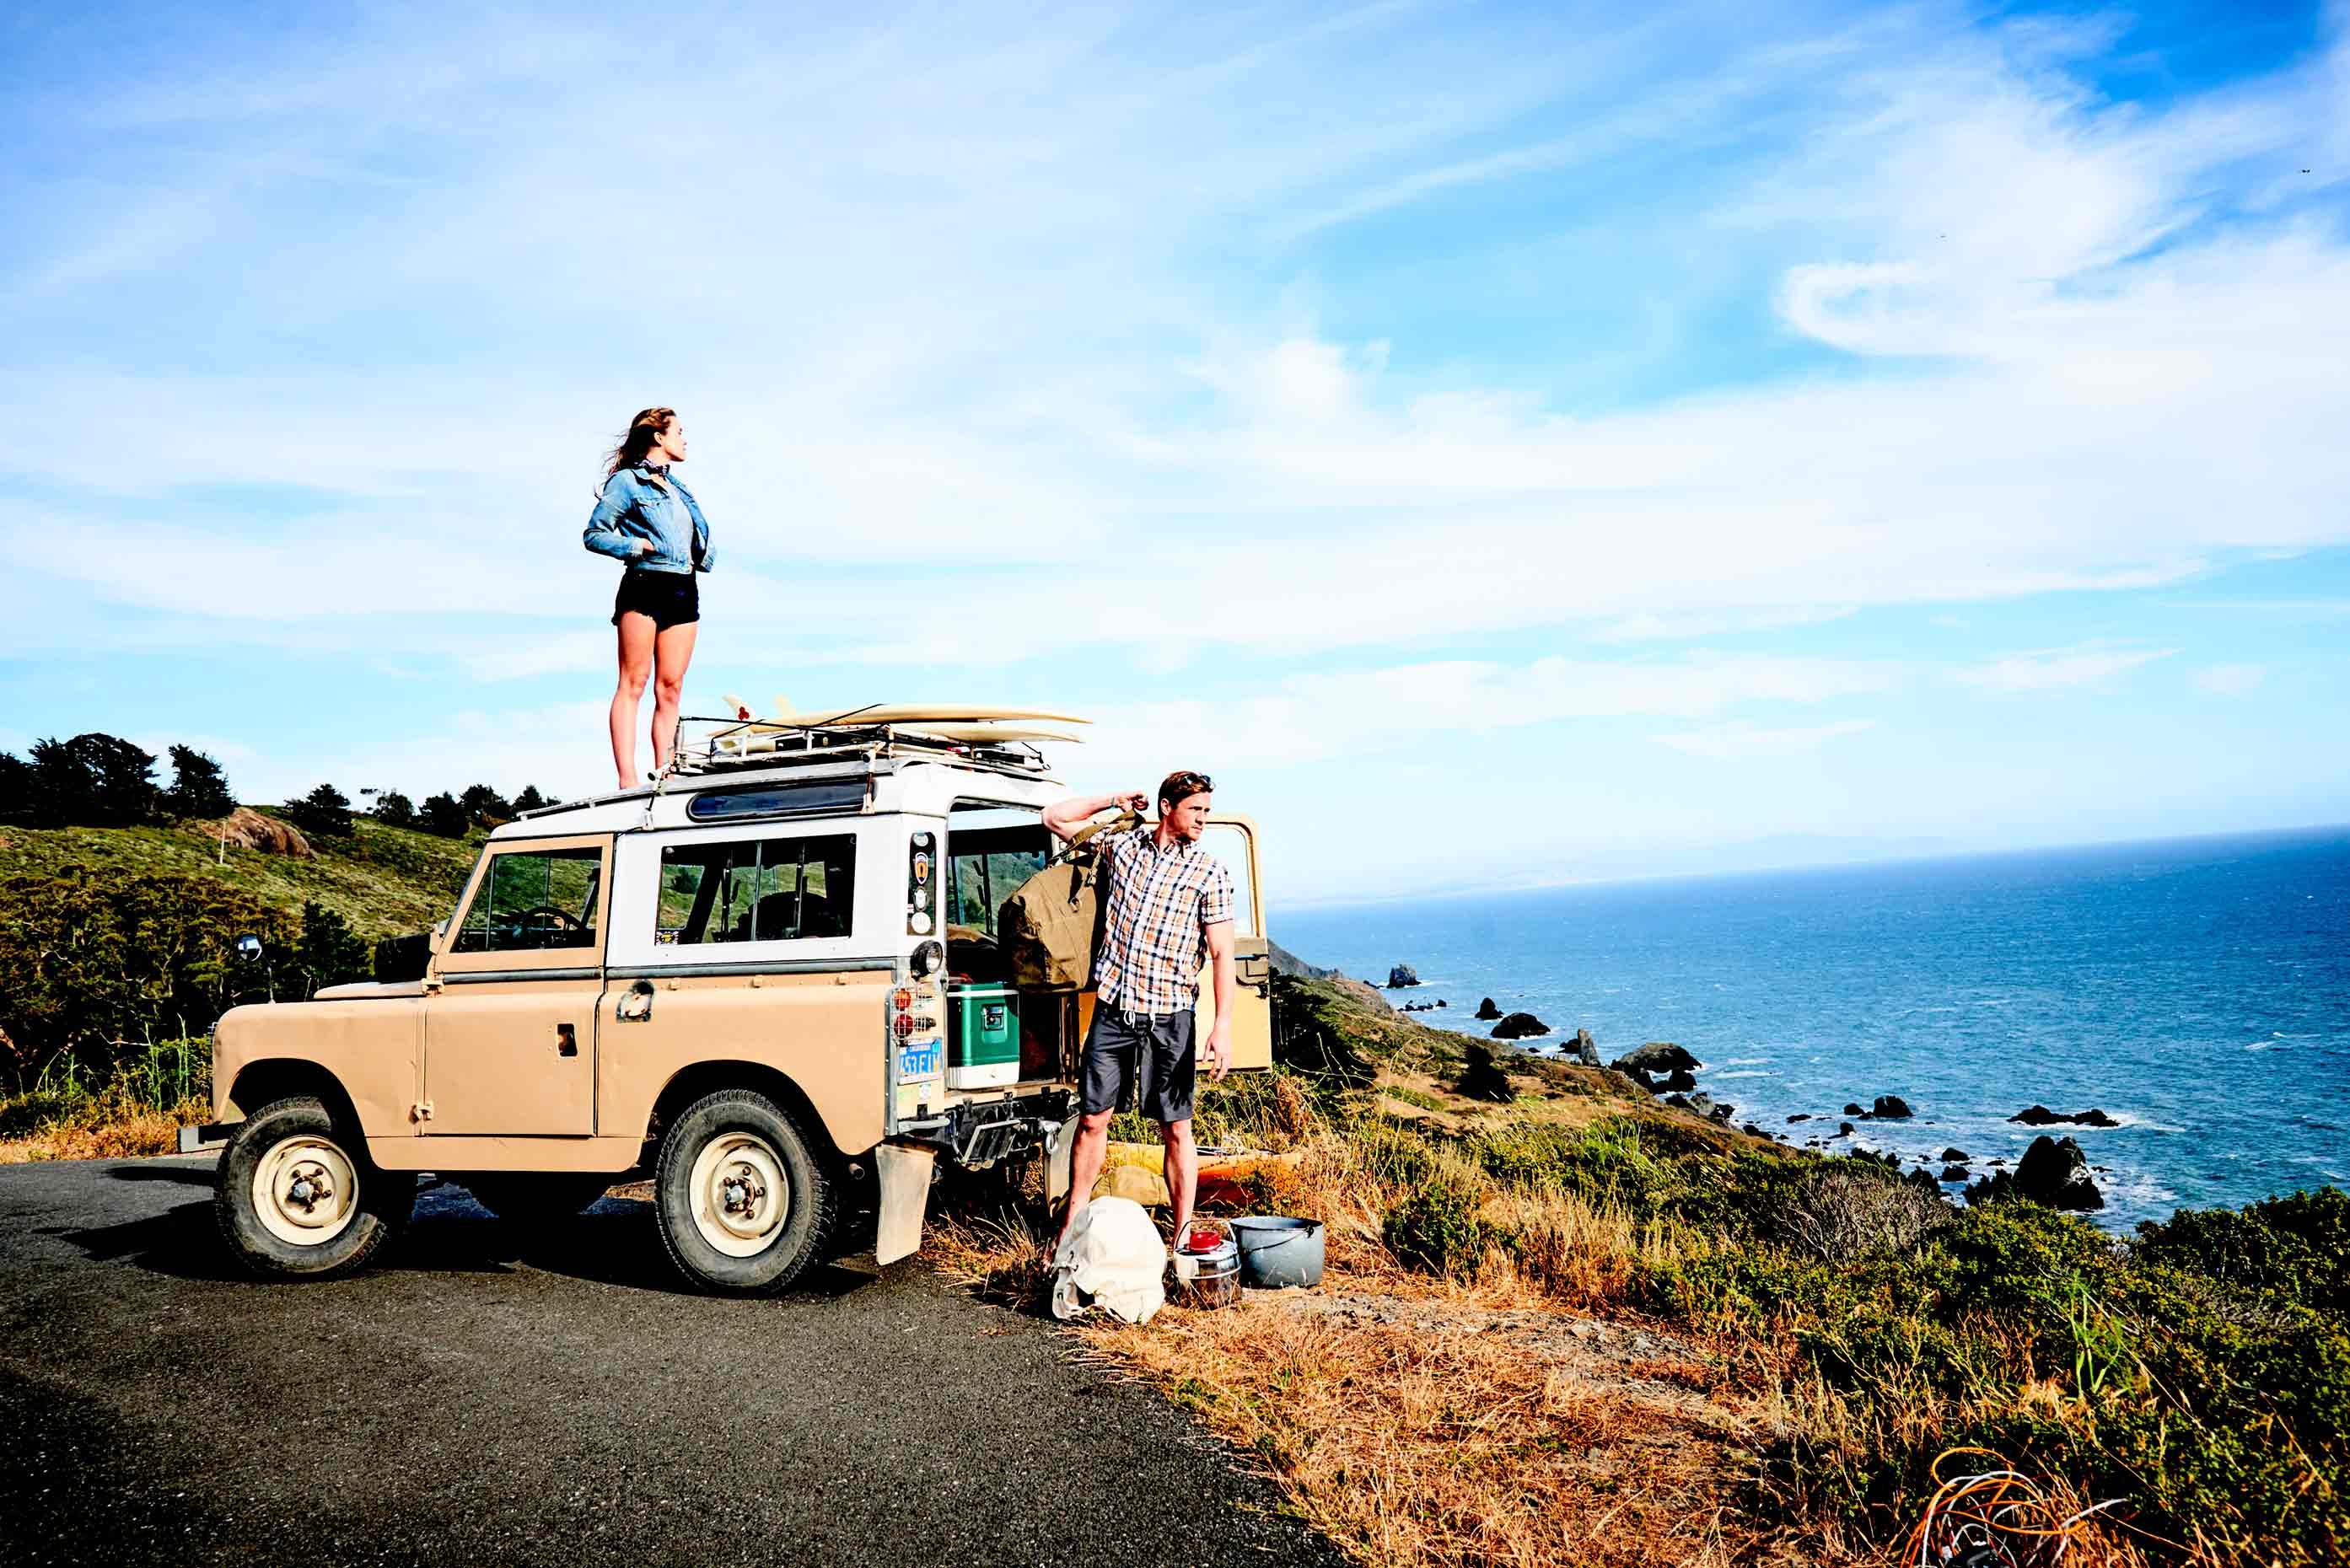 16_Adventure_Landrover_5933-1web